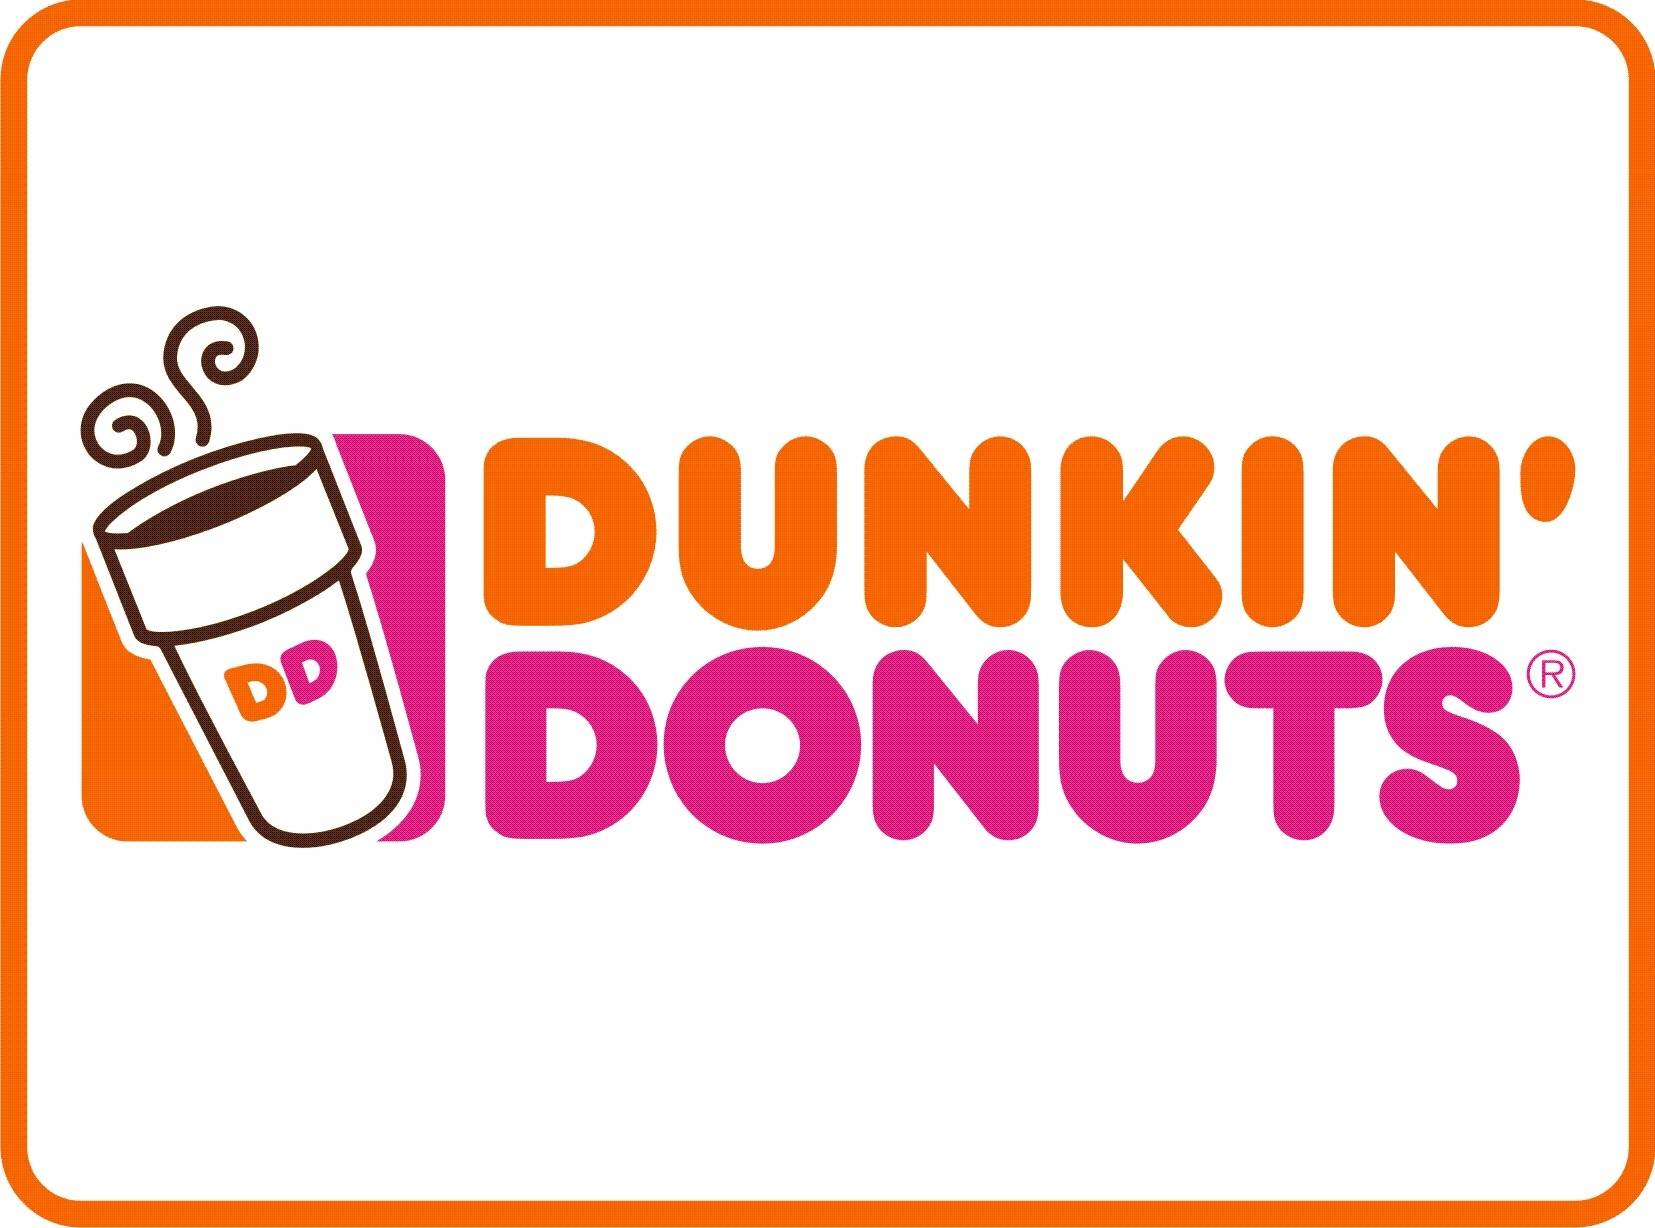 Dunkin Donuts clipart THE – dunkin site' RANT